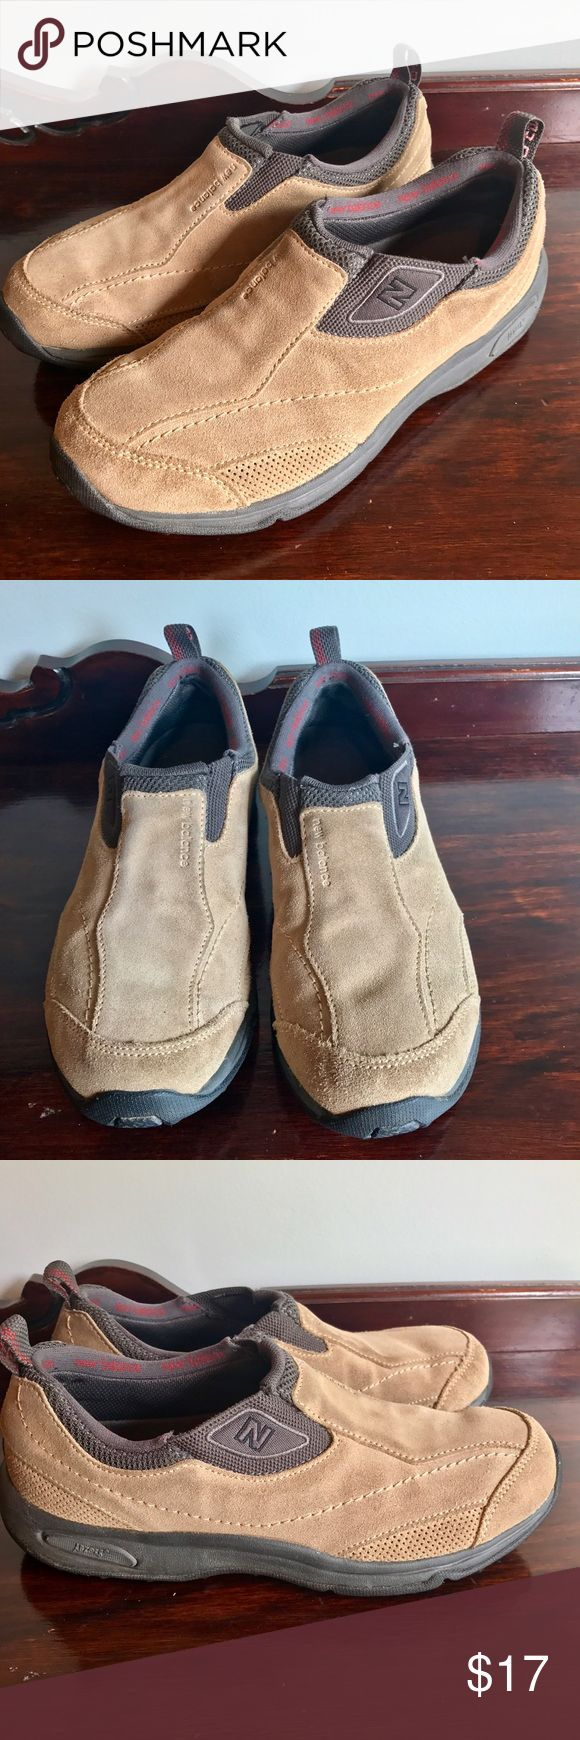 NEW BALANCE 640 Abzorb Slip On Womens Nubuck Shoes NEW BALANCE 640 Abzorb Slip On Womens Nubuck Size 9 Hiking Walking Shoes Have some wear spots on heels. See pics New Balance Shoes Athletic Shoes